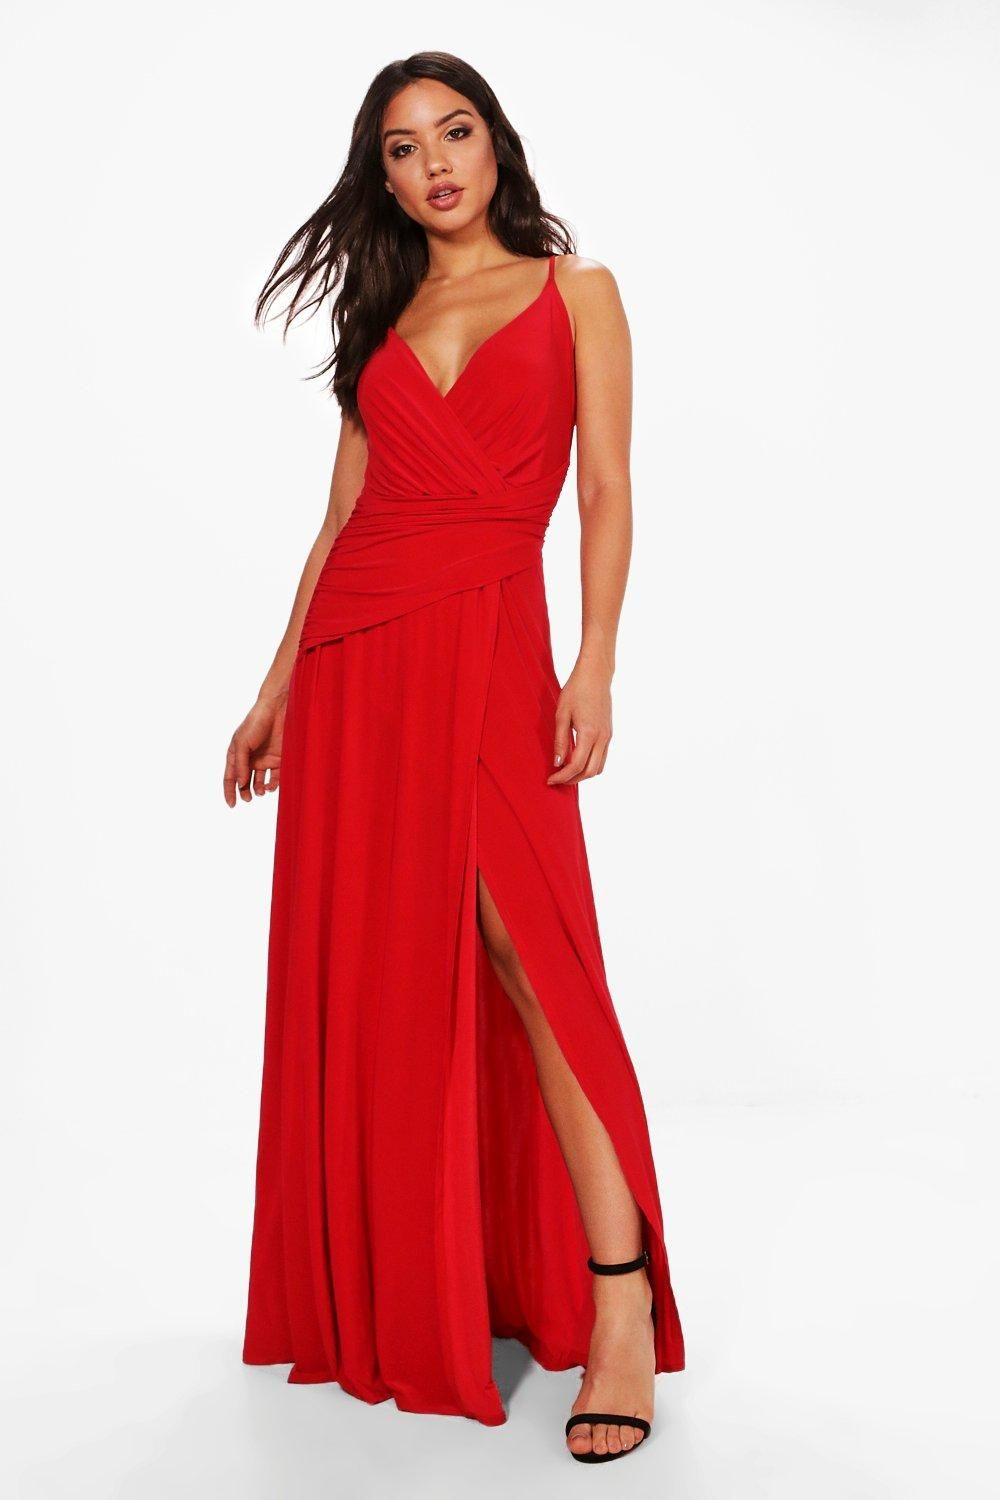 Slinky Wrap Ruched Strappy Maxi Bridesmaid Dress Boohoo Australia Red Bridesmaid Dresses Maxi Bridesmaid Dresses Maxi Dress Collection [ 1500 x 1000 Pixel ]